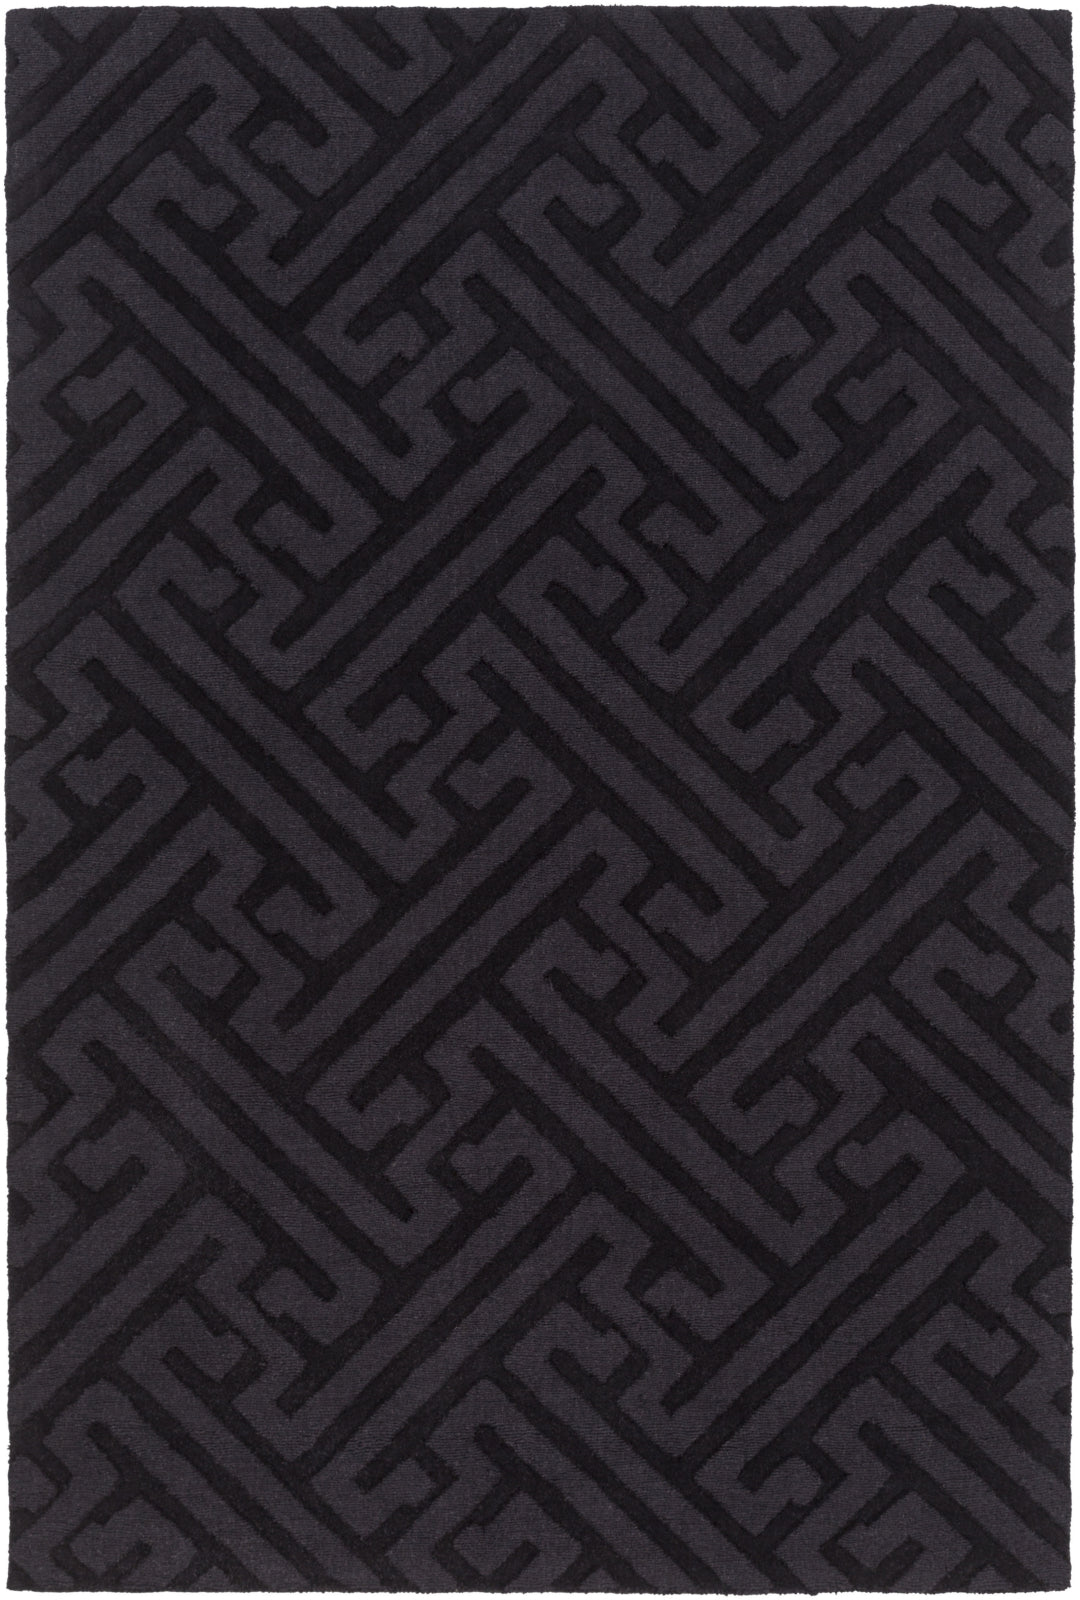 Surya The Oakes OAK-6009 Area Rug by Florence Broadhurst main image